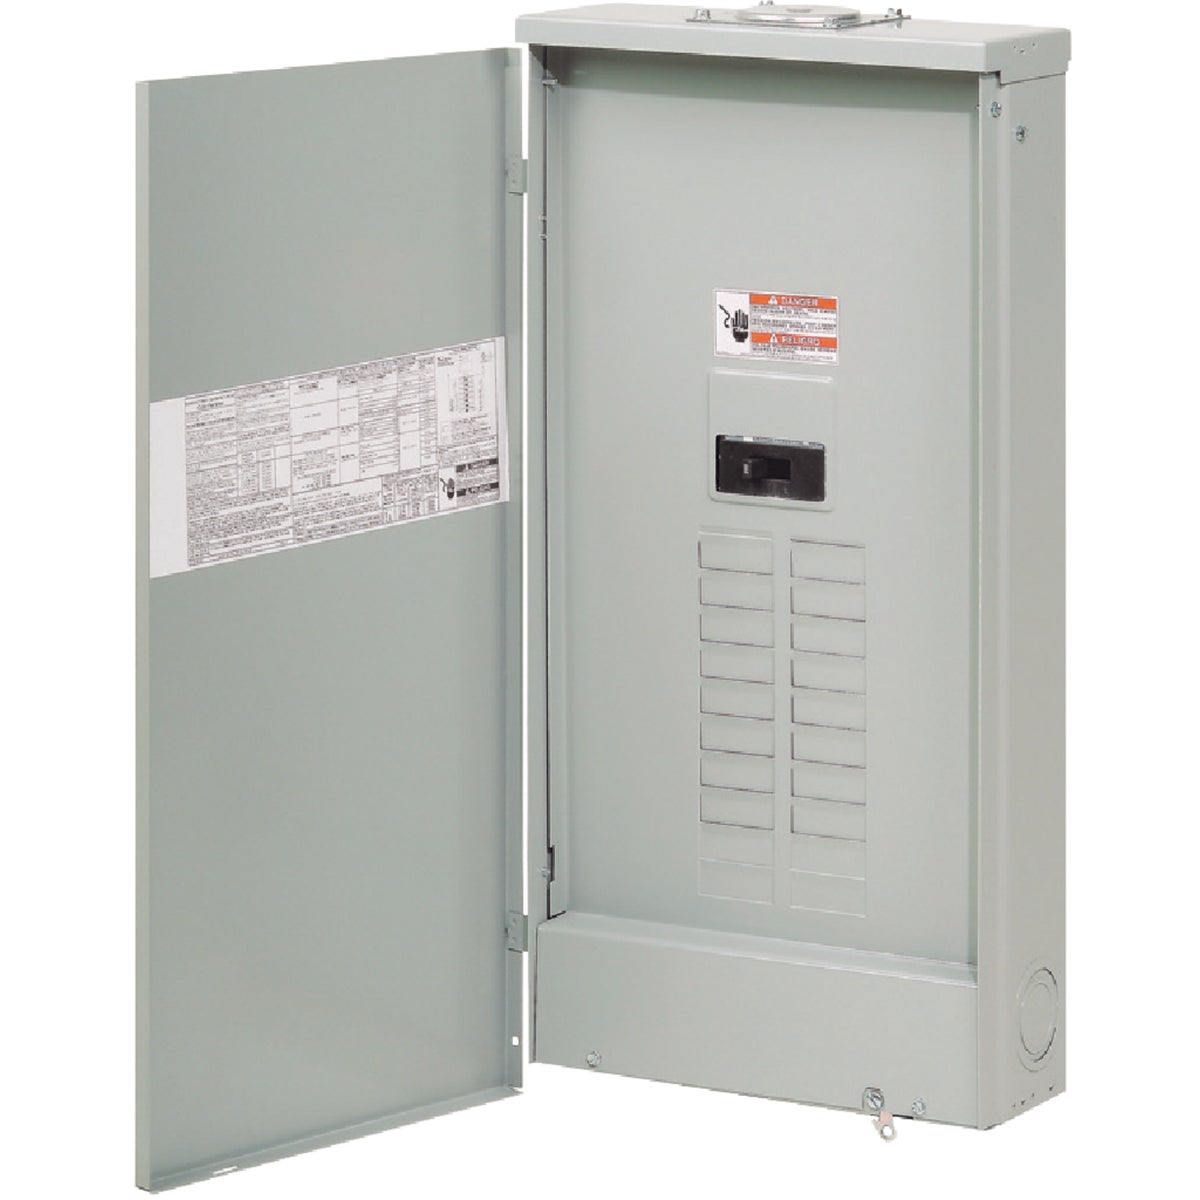 200A LOAD CENTER - BR2040B200R by Eaton Corporation